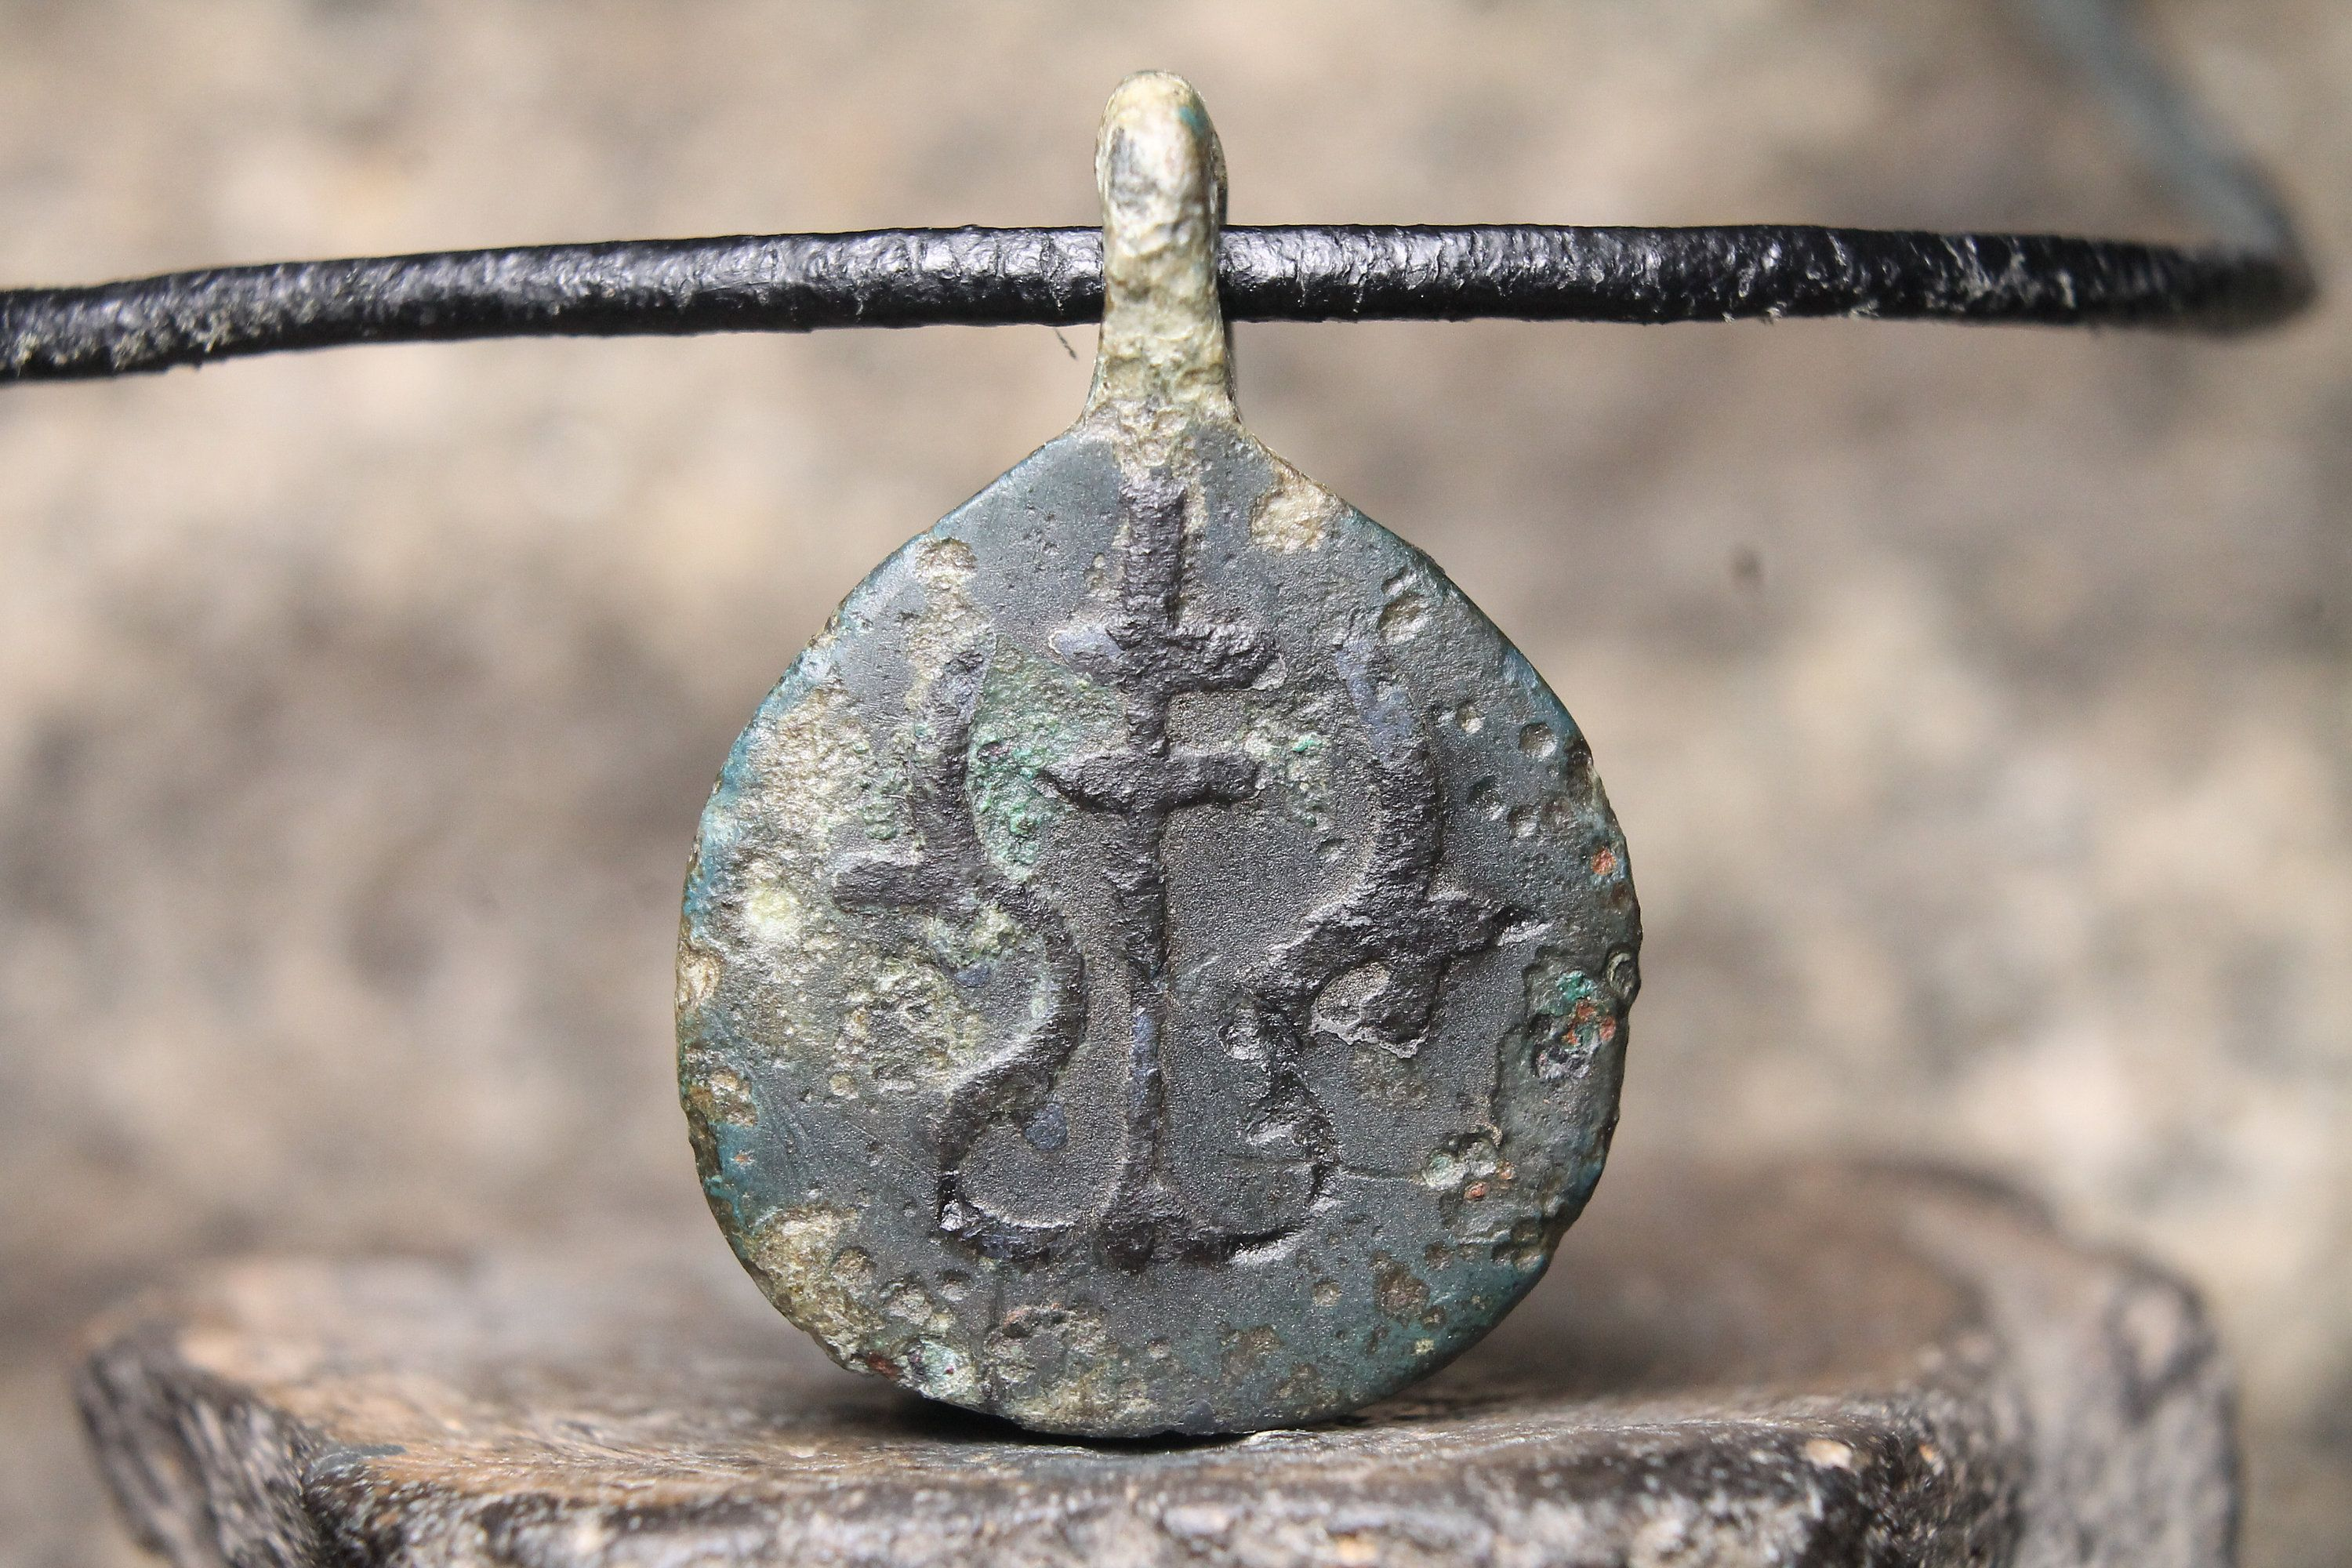 Ancient Scandinavian Amulet Rare Pendant 6th 11th Century Ad Archaeological Find In 2020 Rare Pendant Norse Jewelry Celtic Pendant